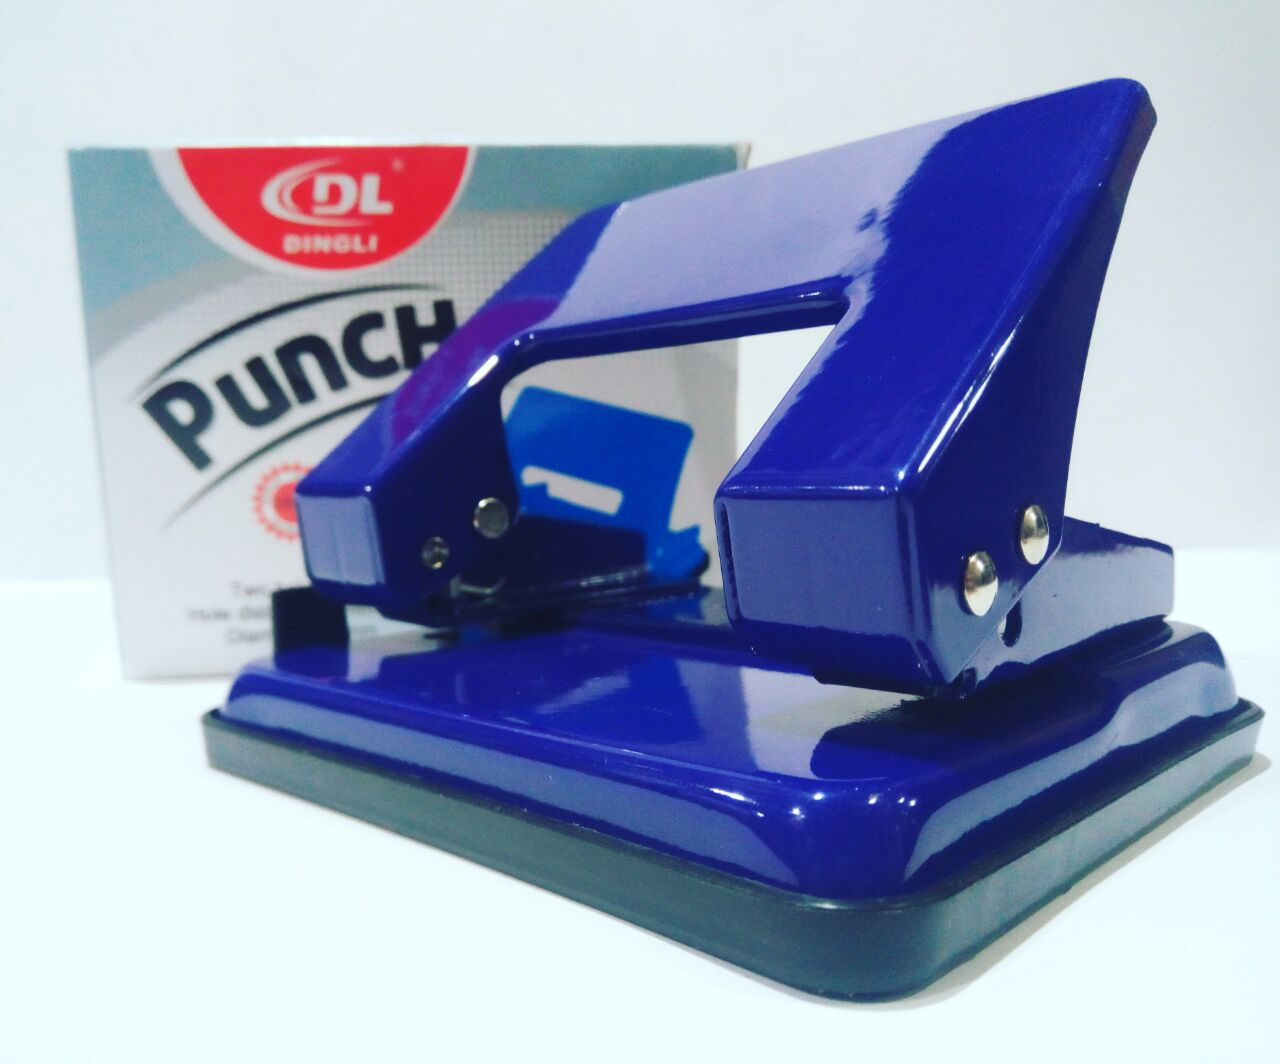 Punch Machine China - M.M STATIONERS